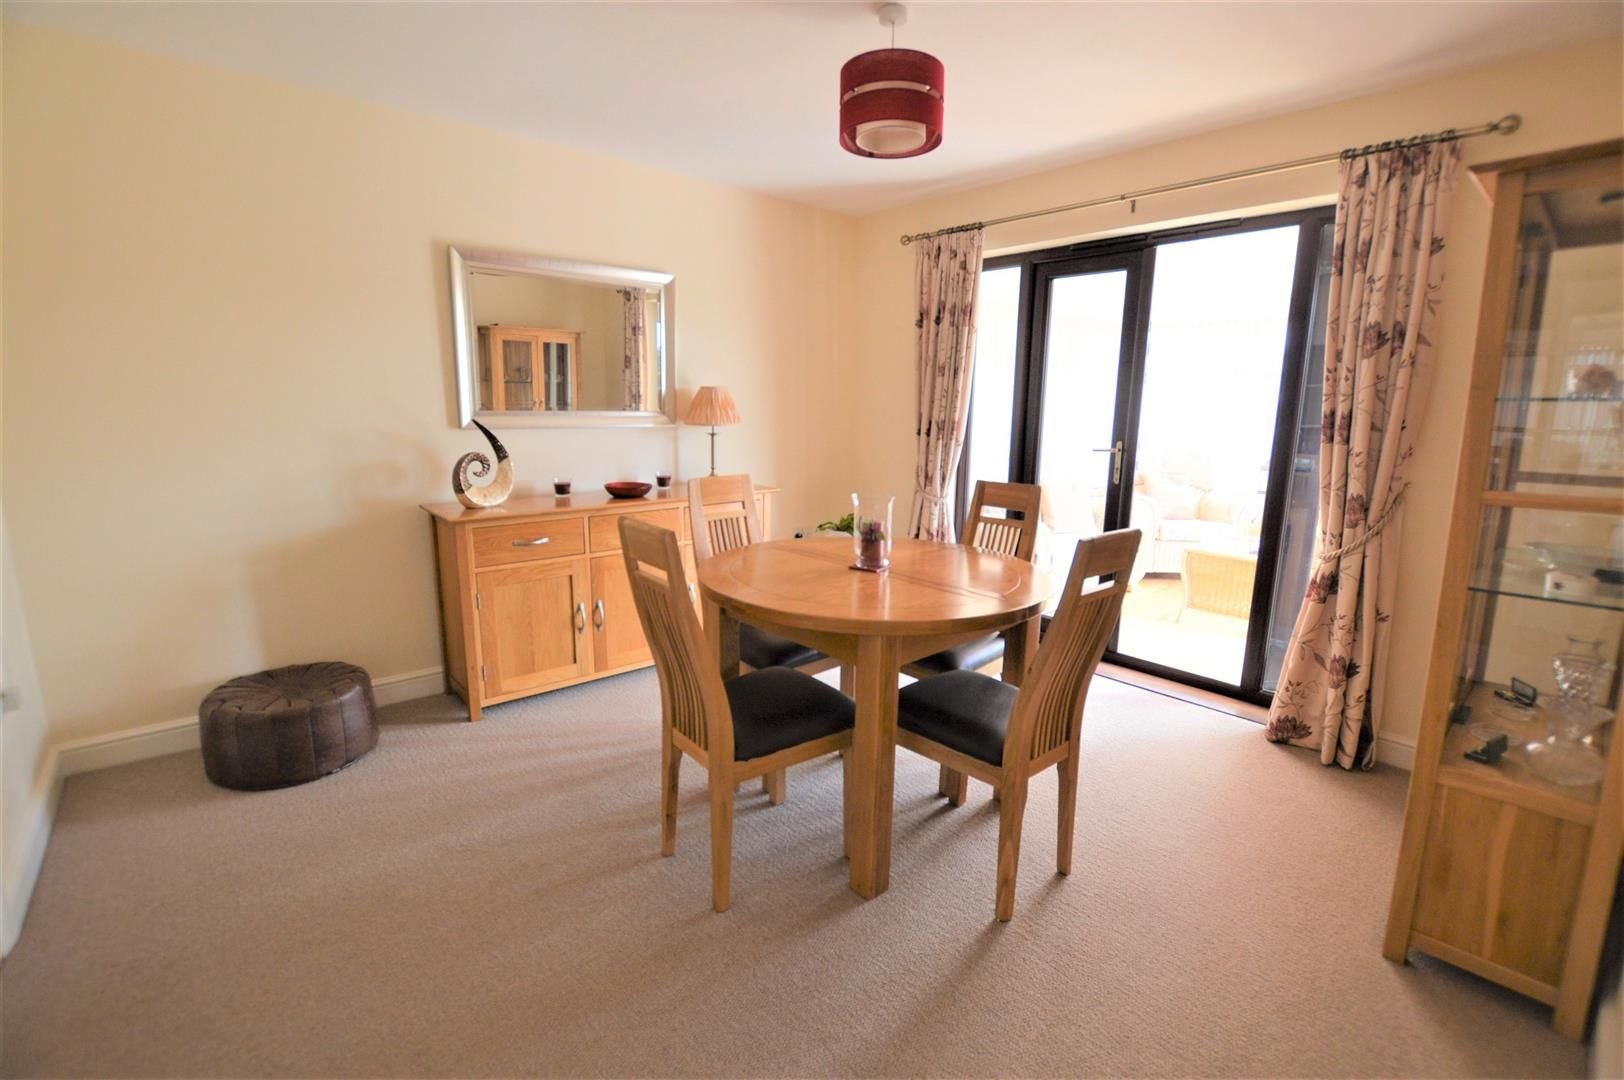 3 bed detached for sale in Kimbolton 5